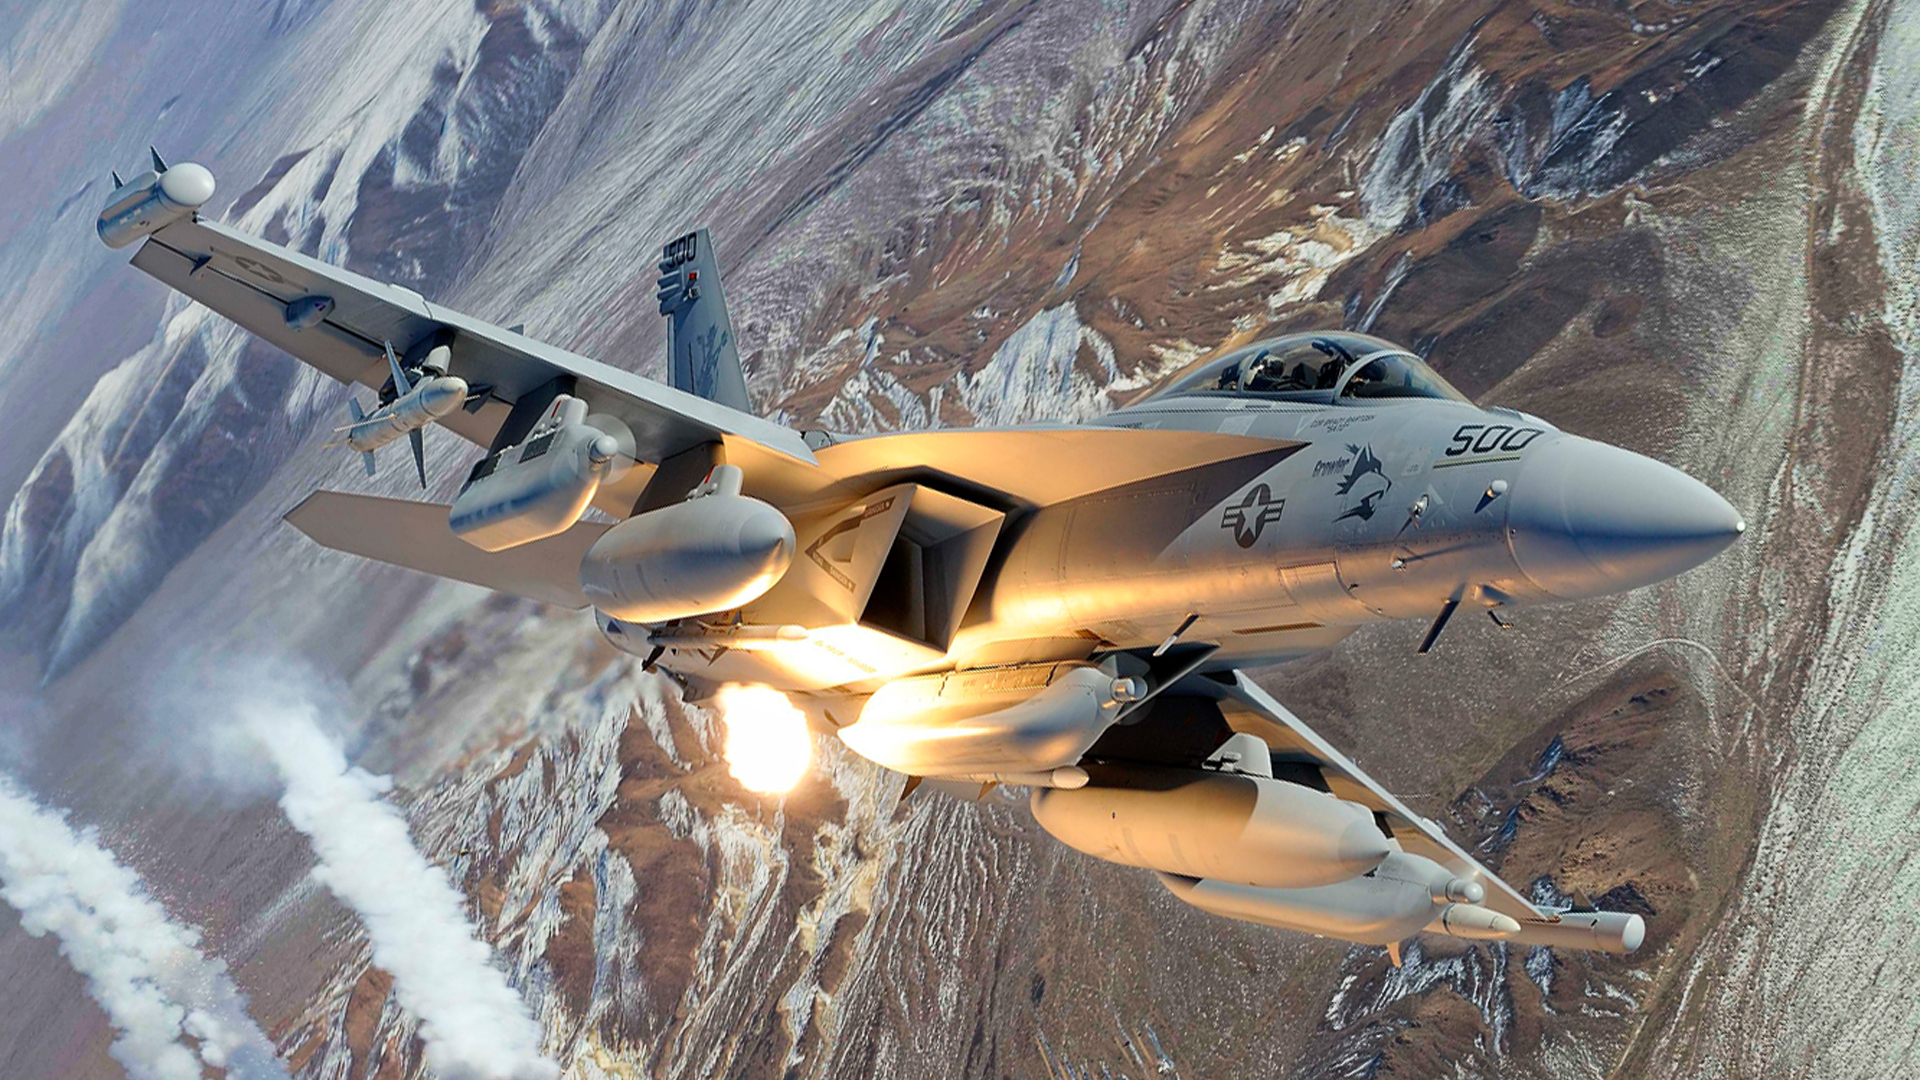 ea-18g-growler-1